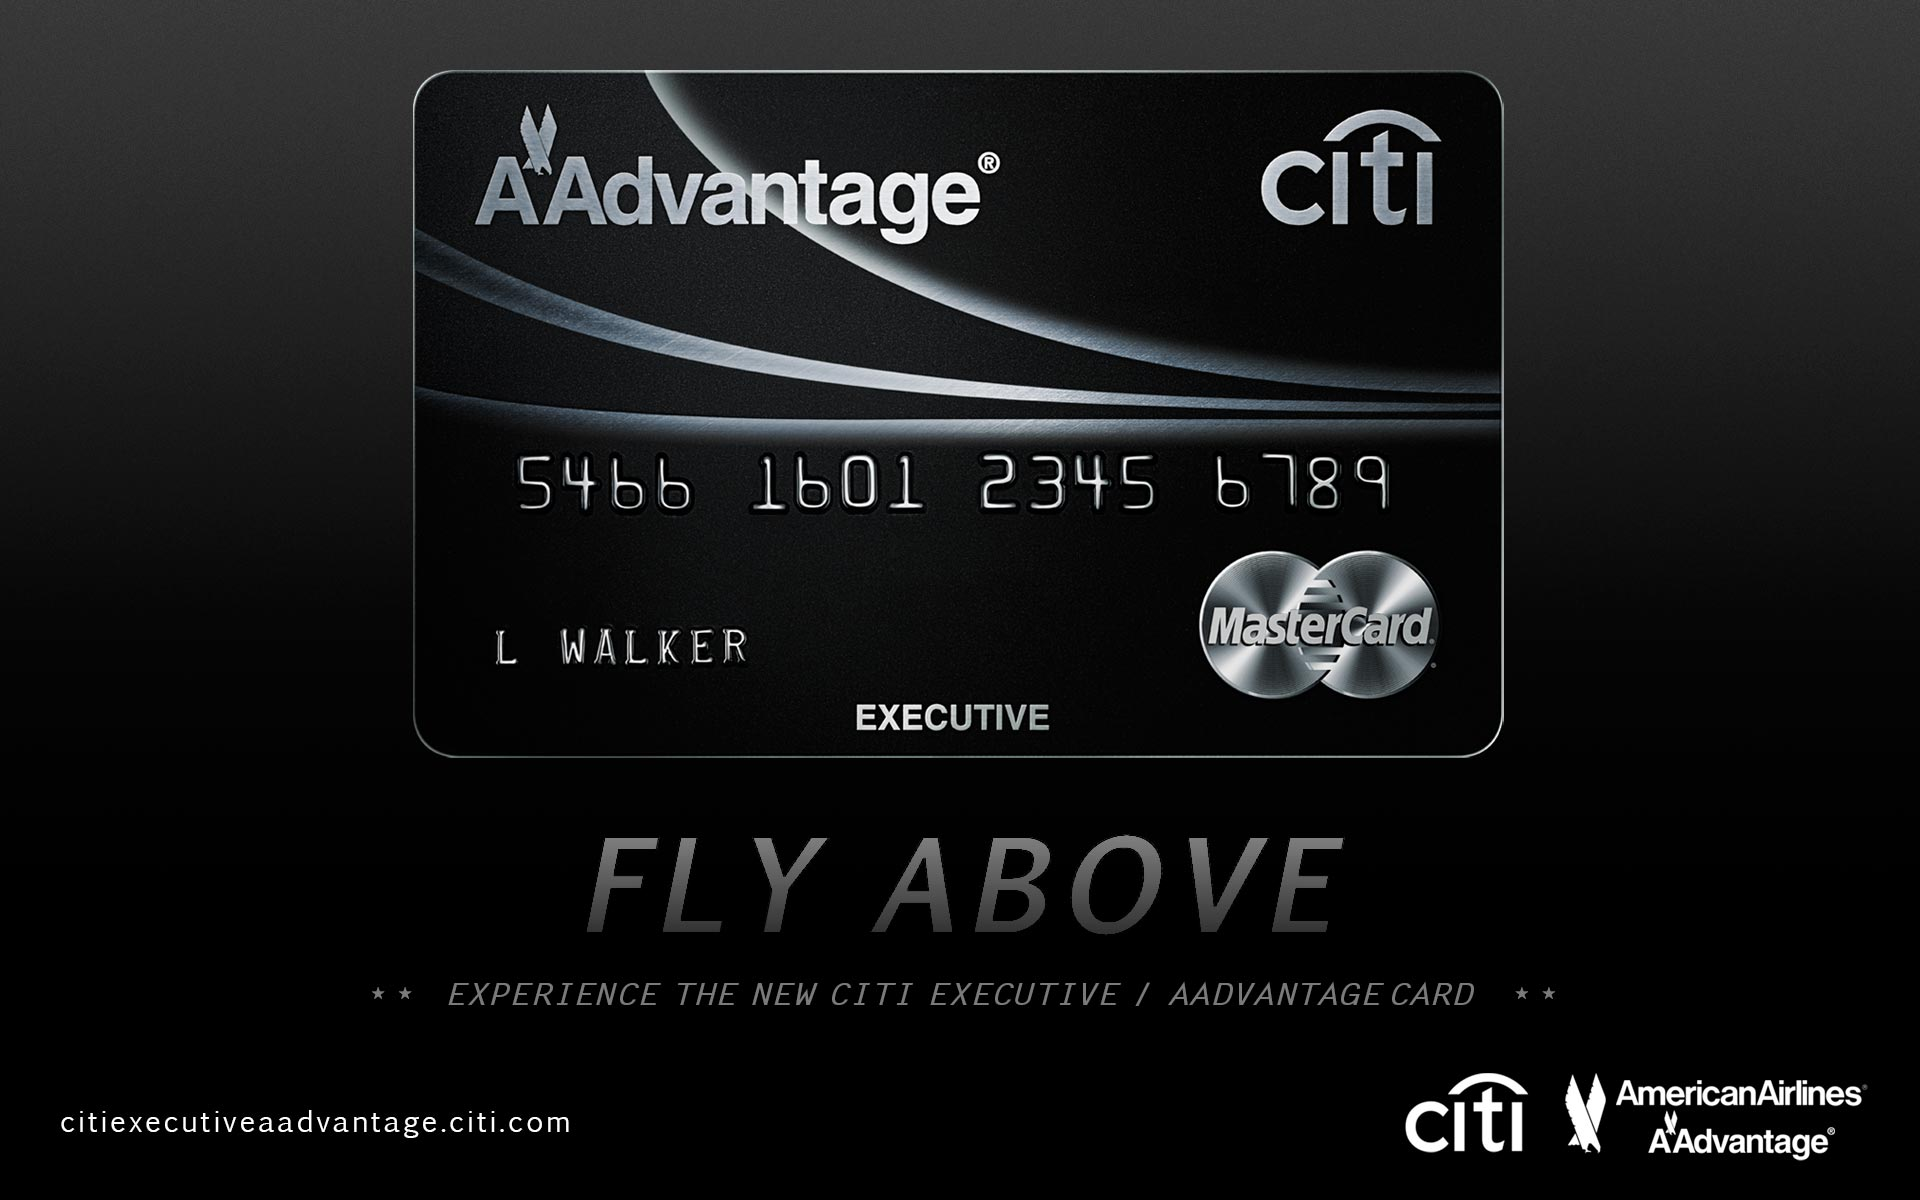 CITIBANK x American Airlines AAdvantage